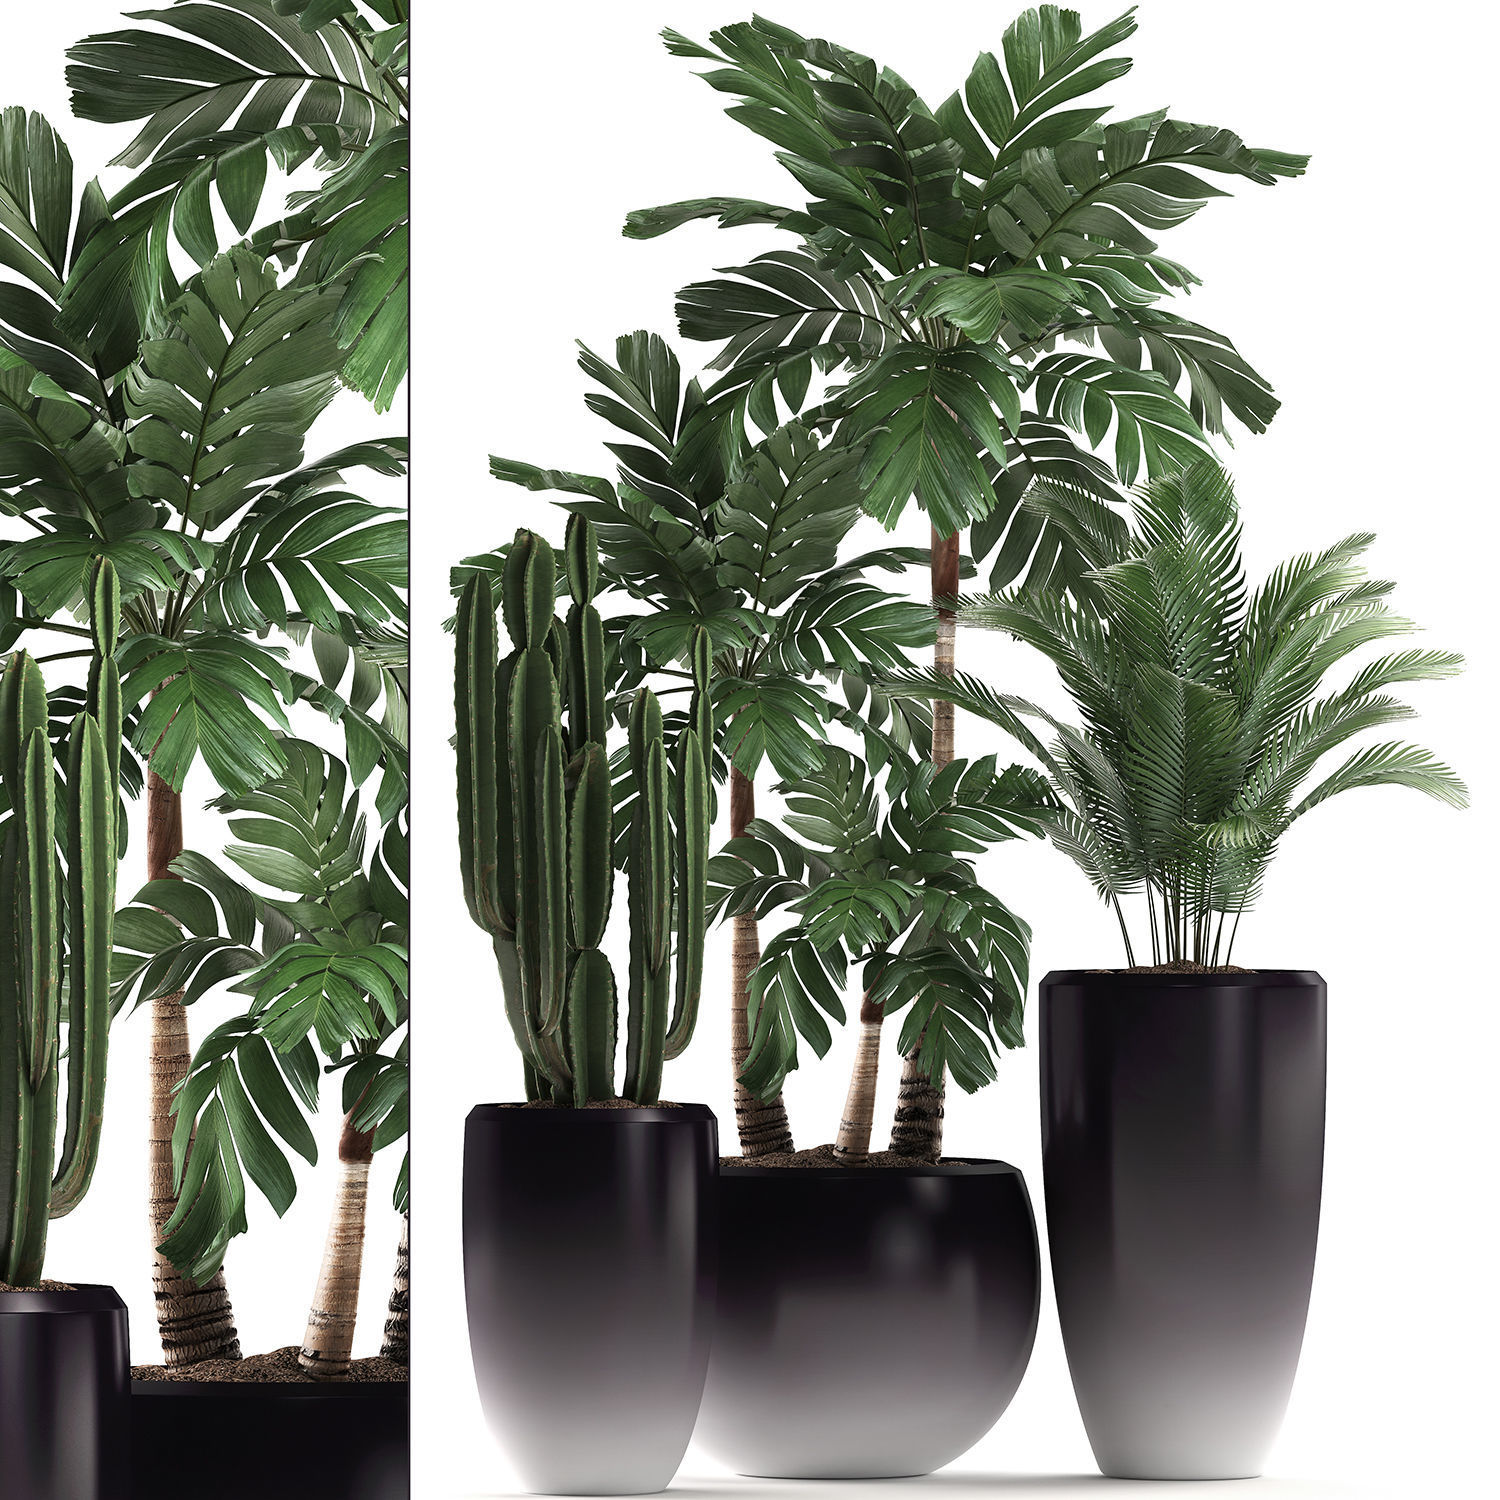 Decorative plants in flower pots for the interior 470A